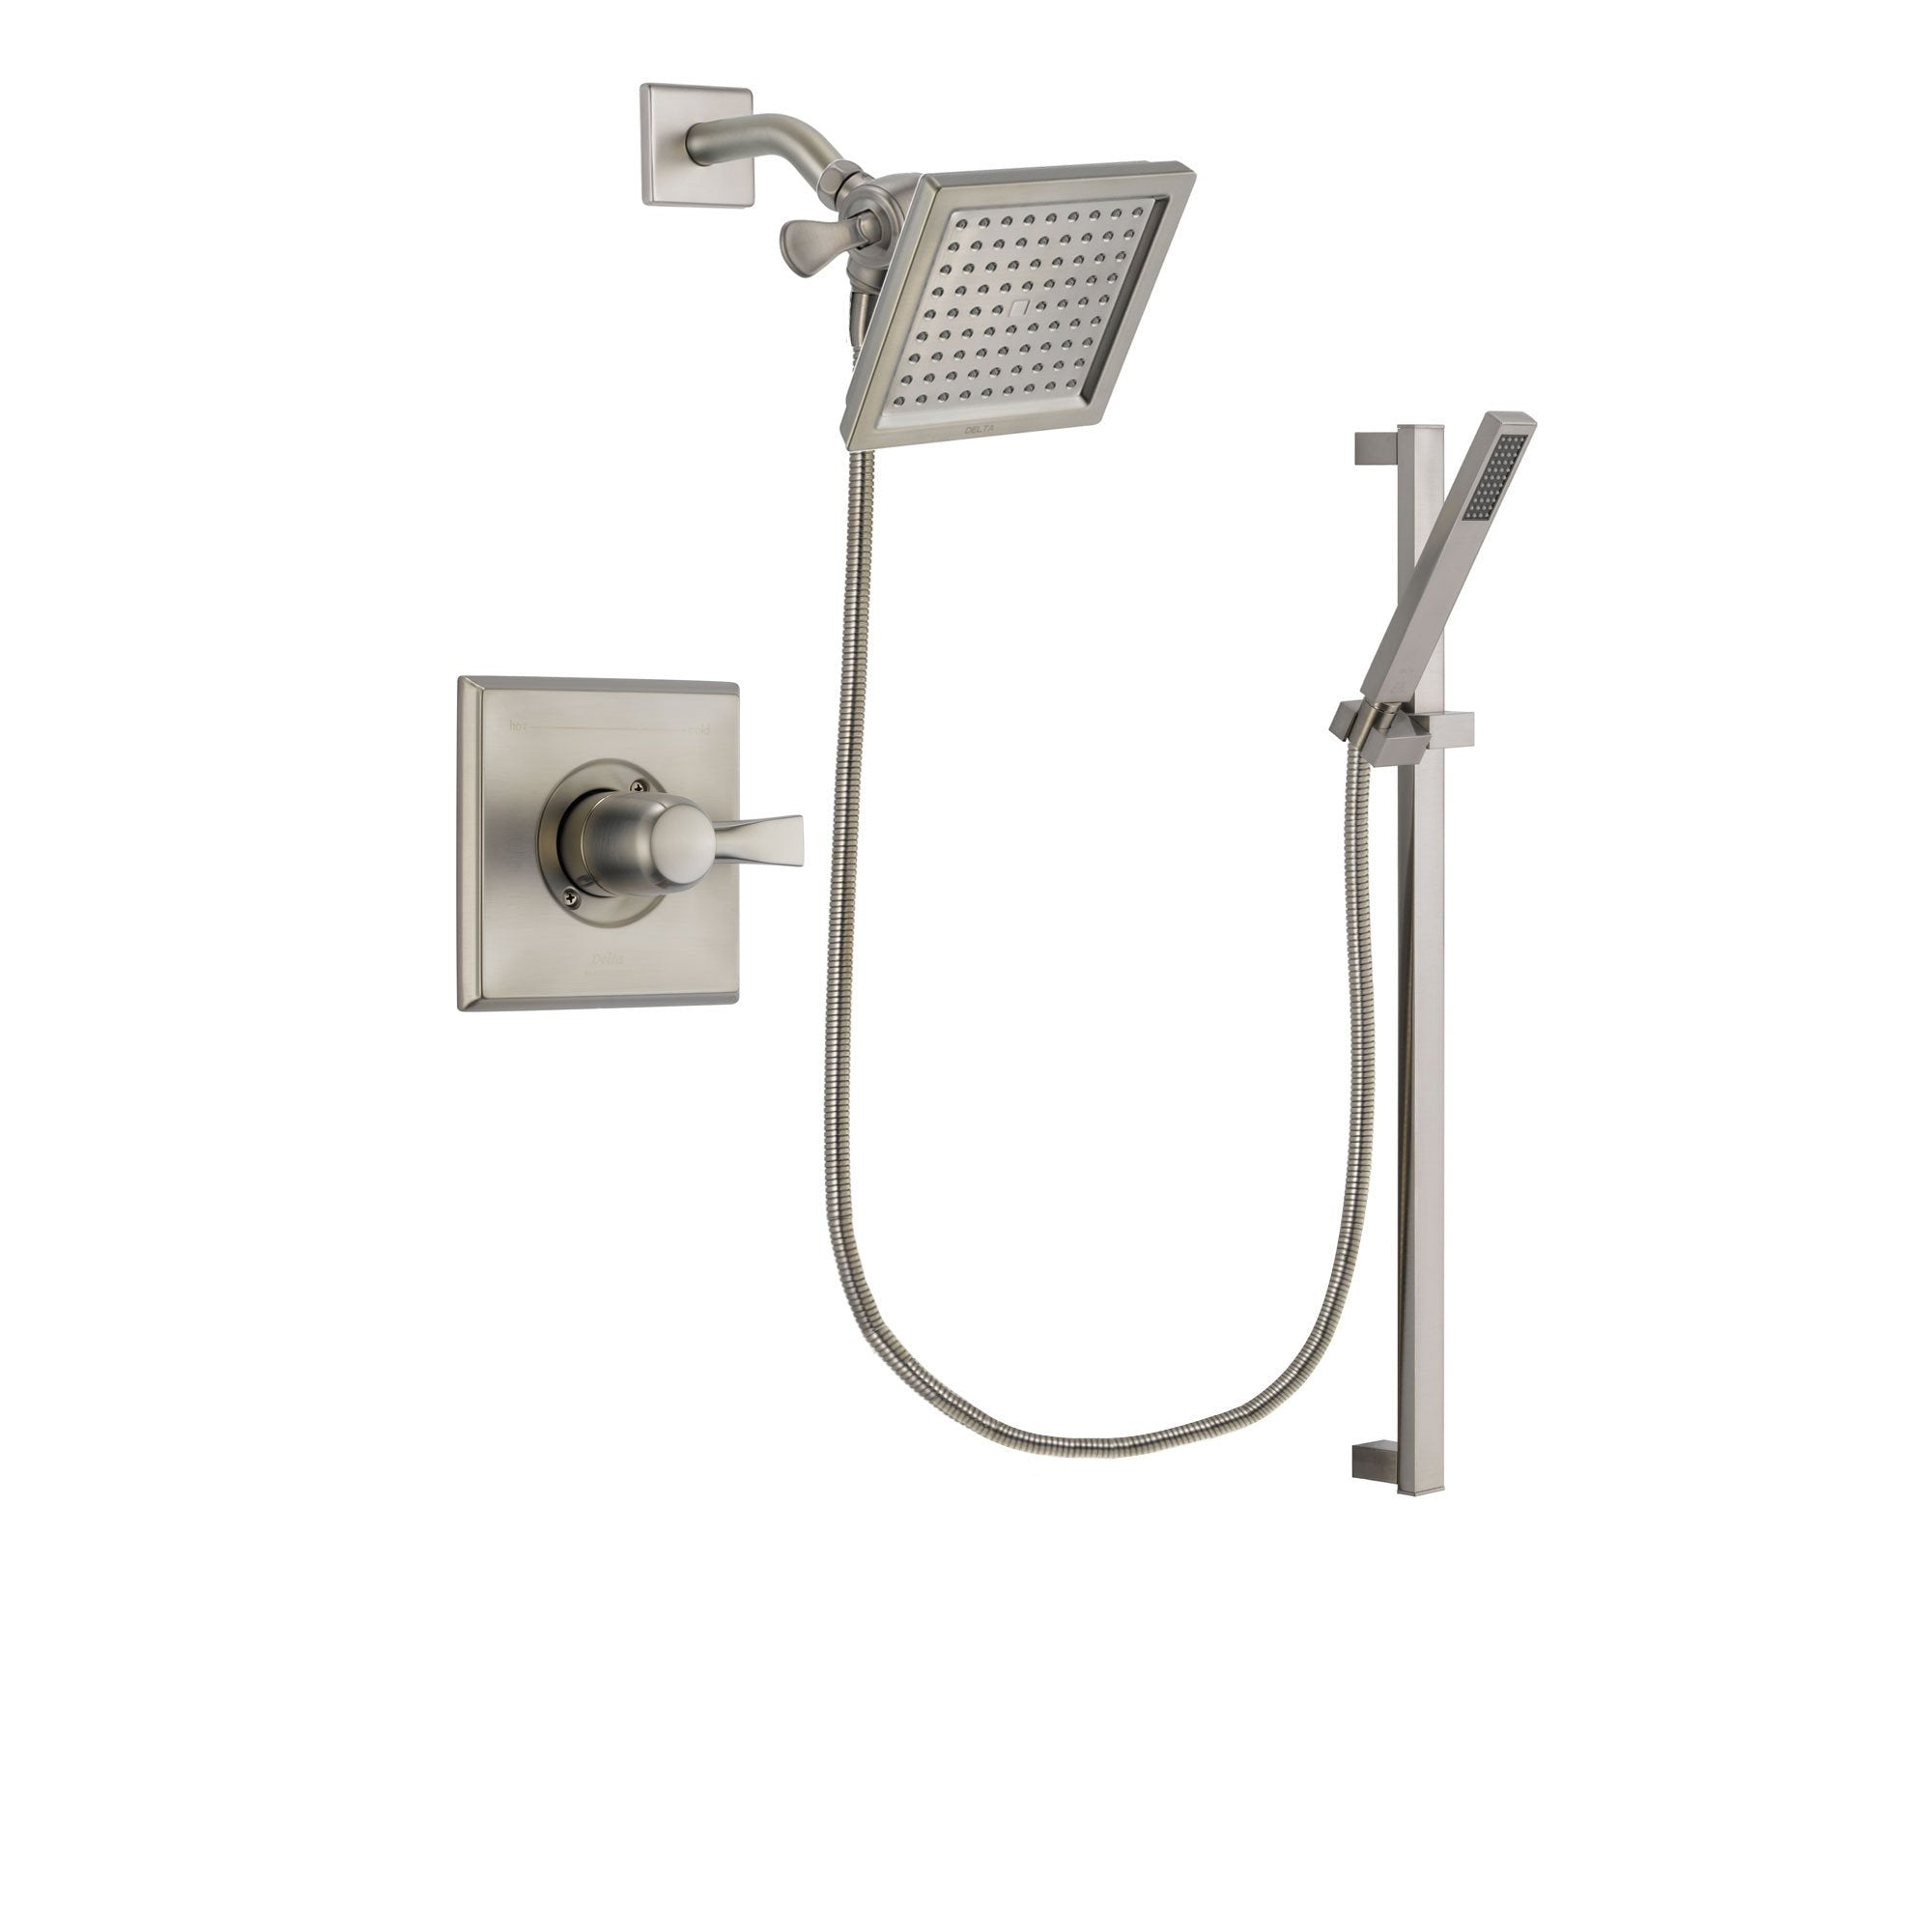 Delta Shower Heads With Hand Shower.Delta Dryden Stainless Steel Finish Shower Faucet System W Hand